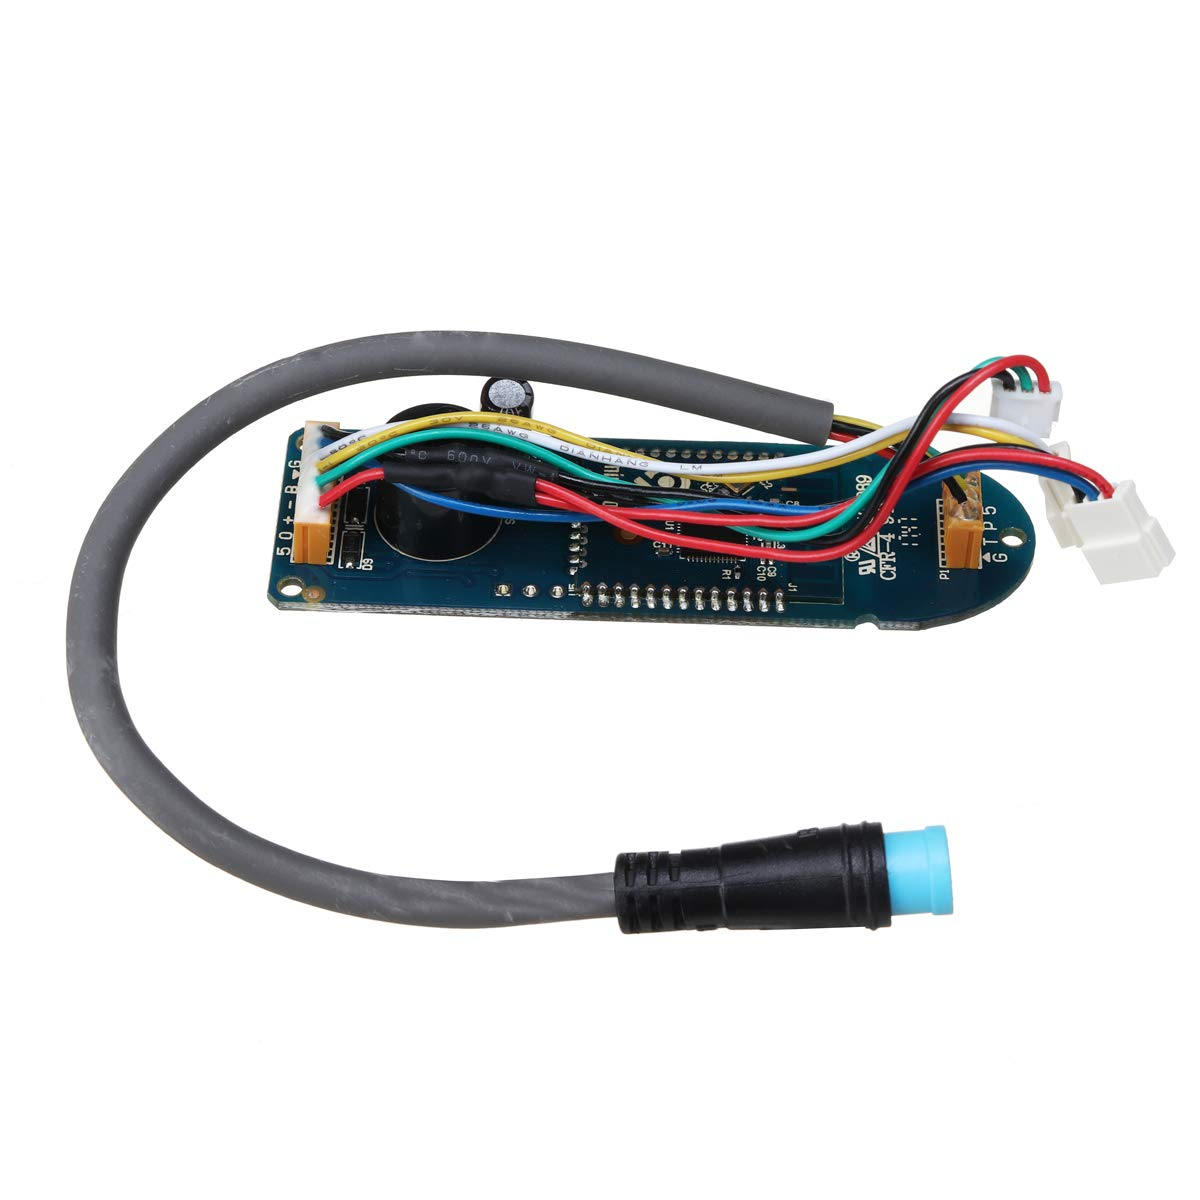 Scooter Clone OEM Original Circuit Board + Dashboard Cover Replacement + Screws for Xiaomi MIJIA M365 Scooter